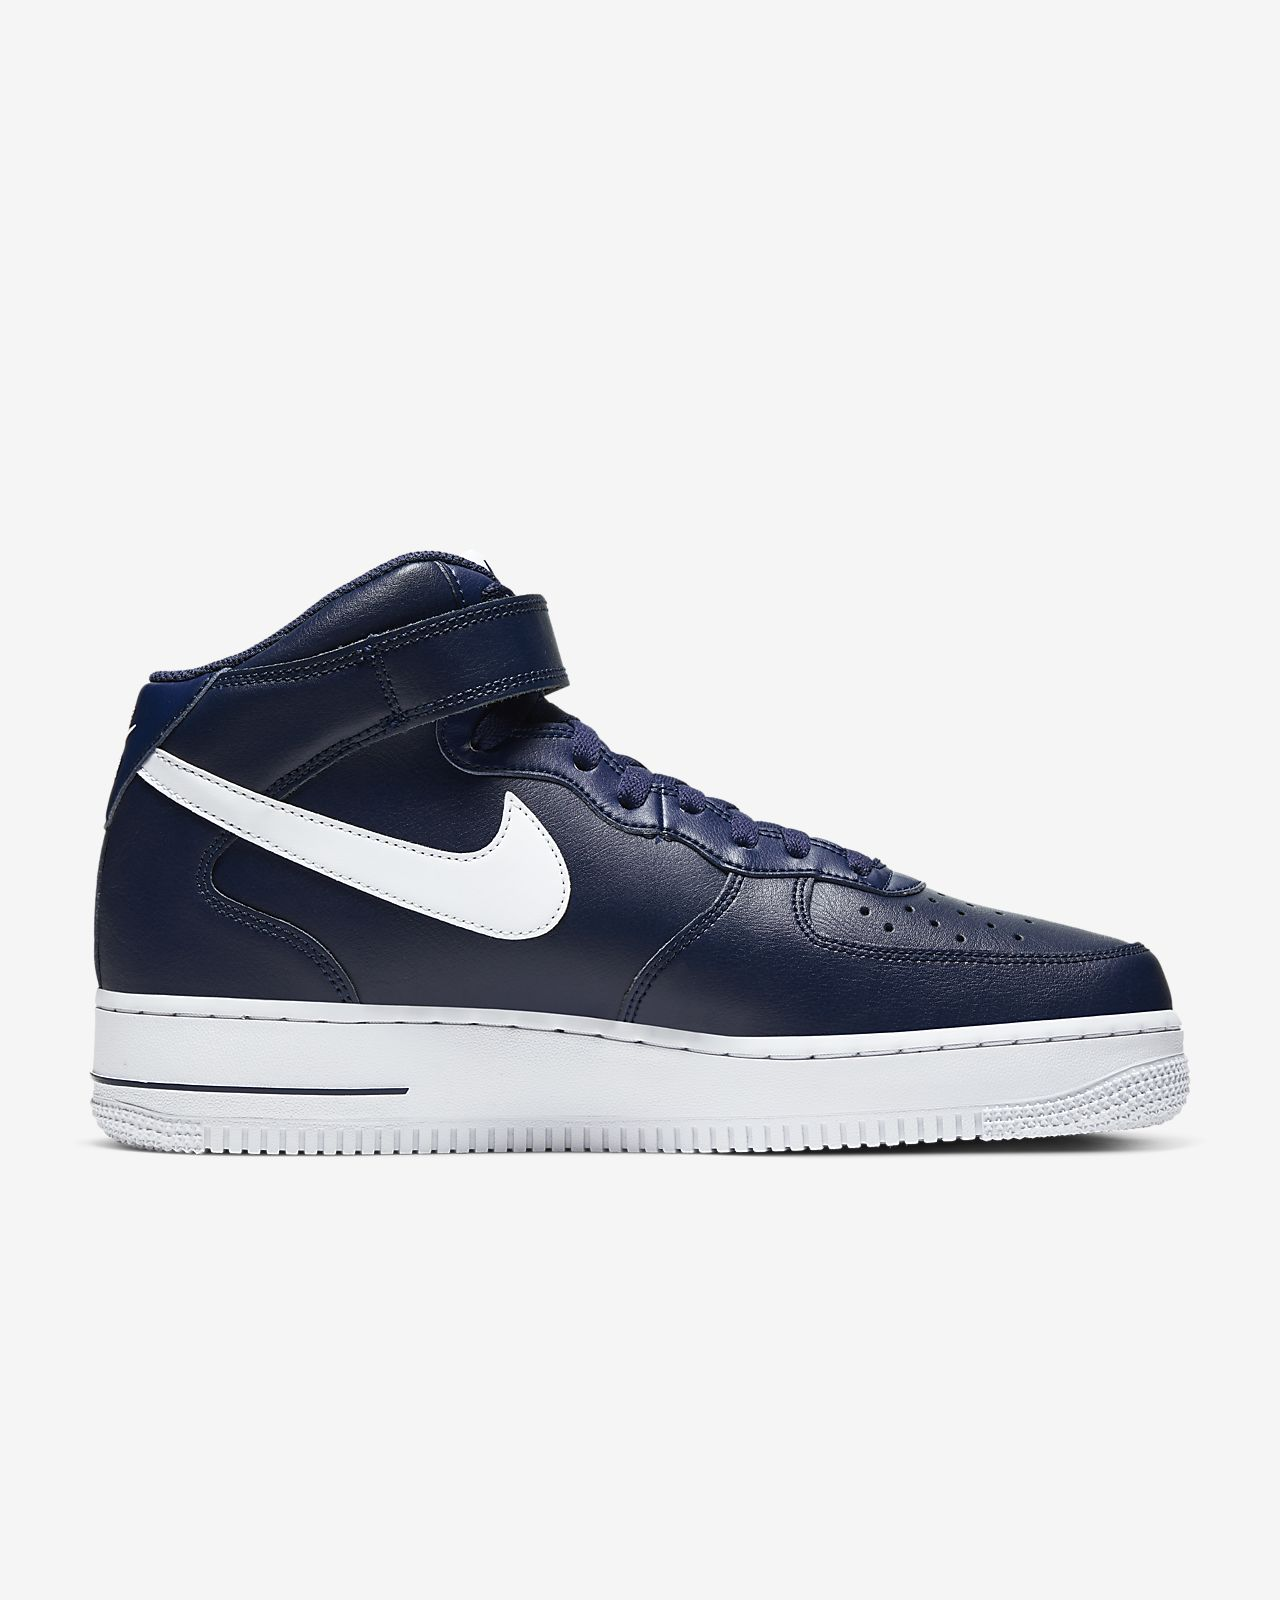 Nike Air Force 1 Mid Midnight Navy Sneakers Shoes